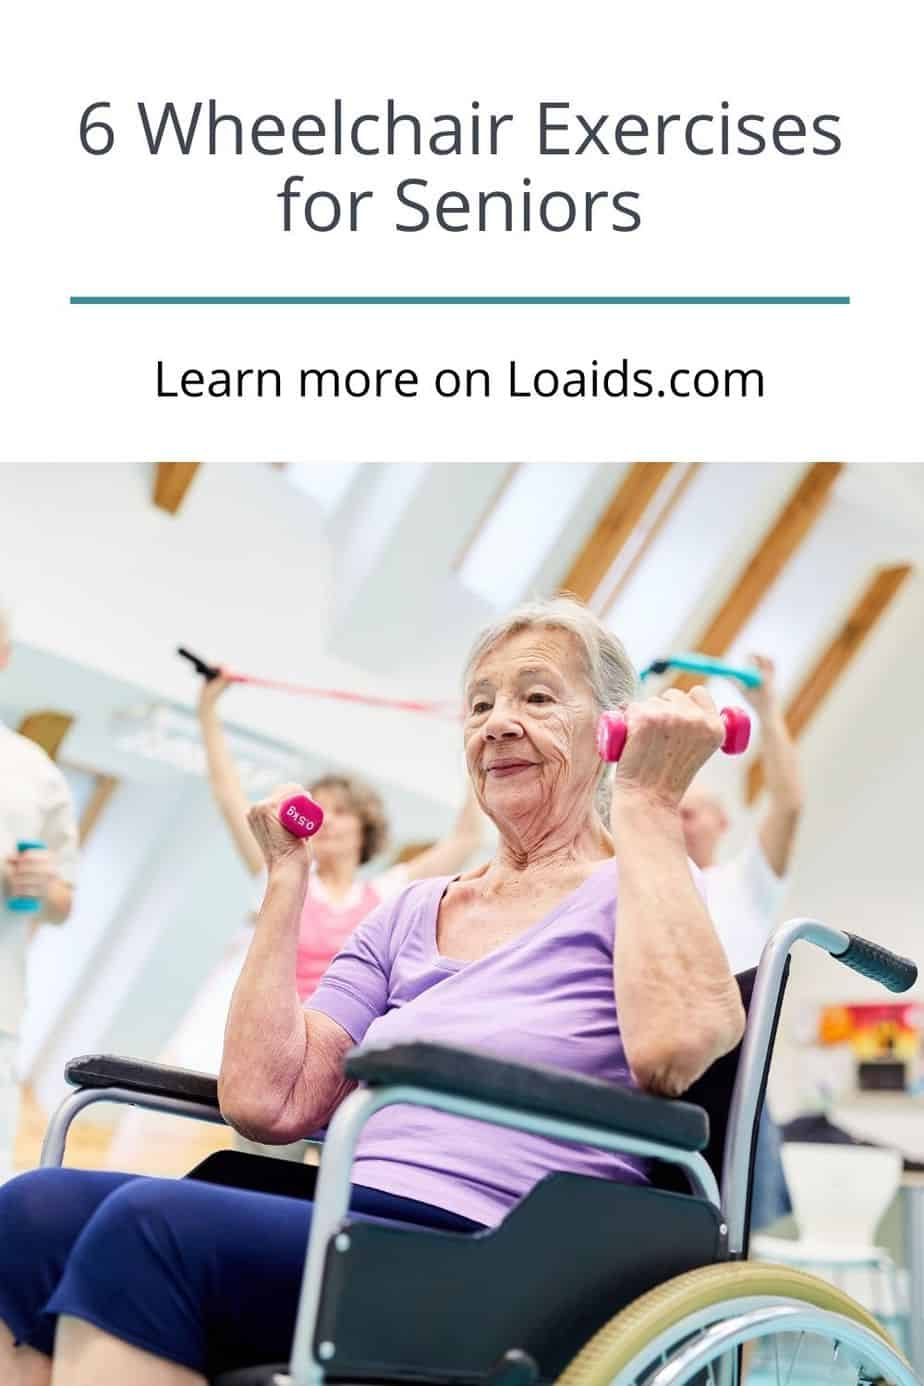 Looking for the best wheelchair exercises for seniors? We've got you! Check out 6 great seated exercise moves to try plus benefits and safety tips here!